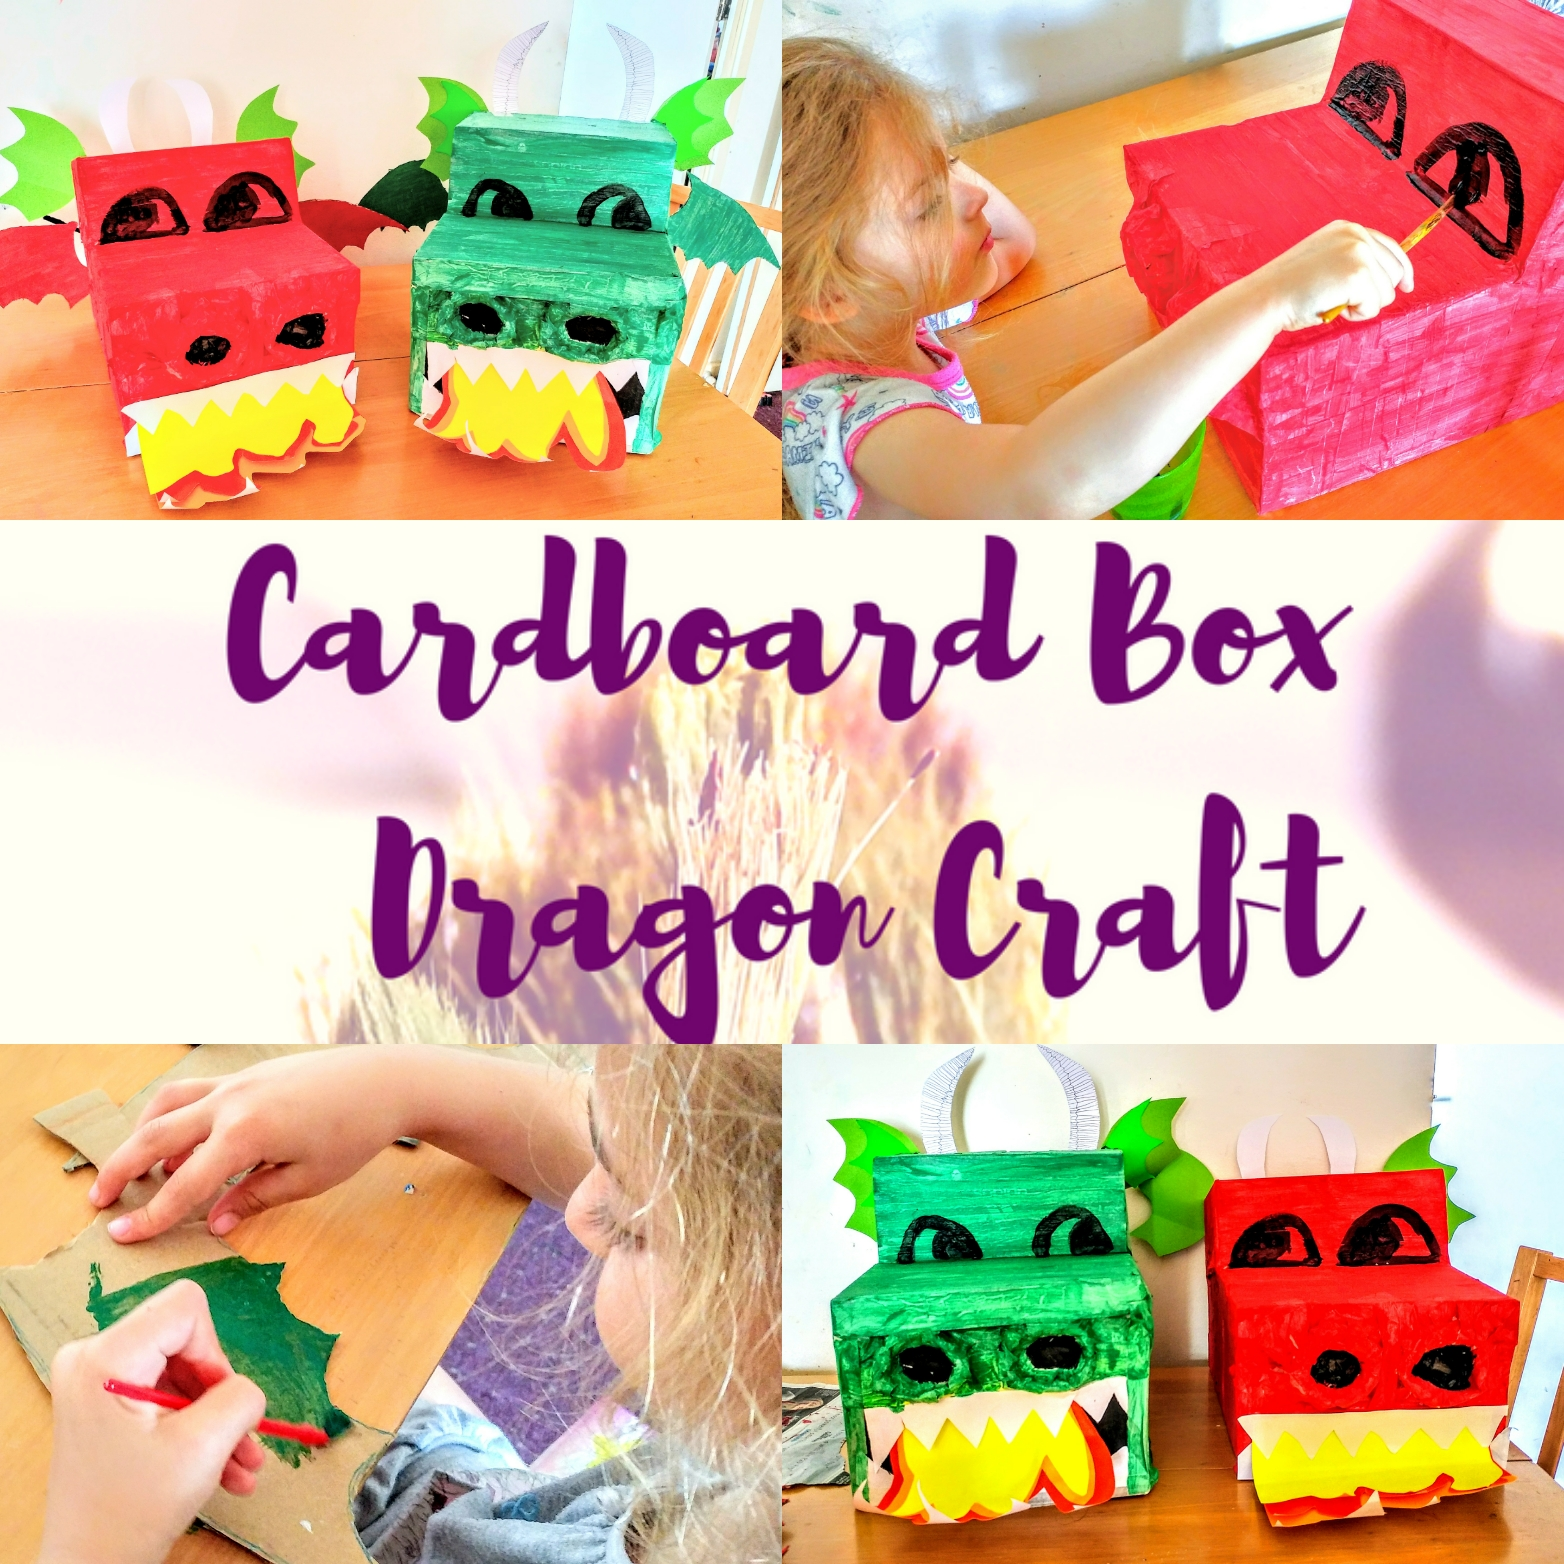 Cardboard Box Dragon Craft